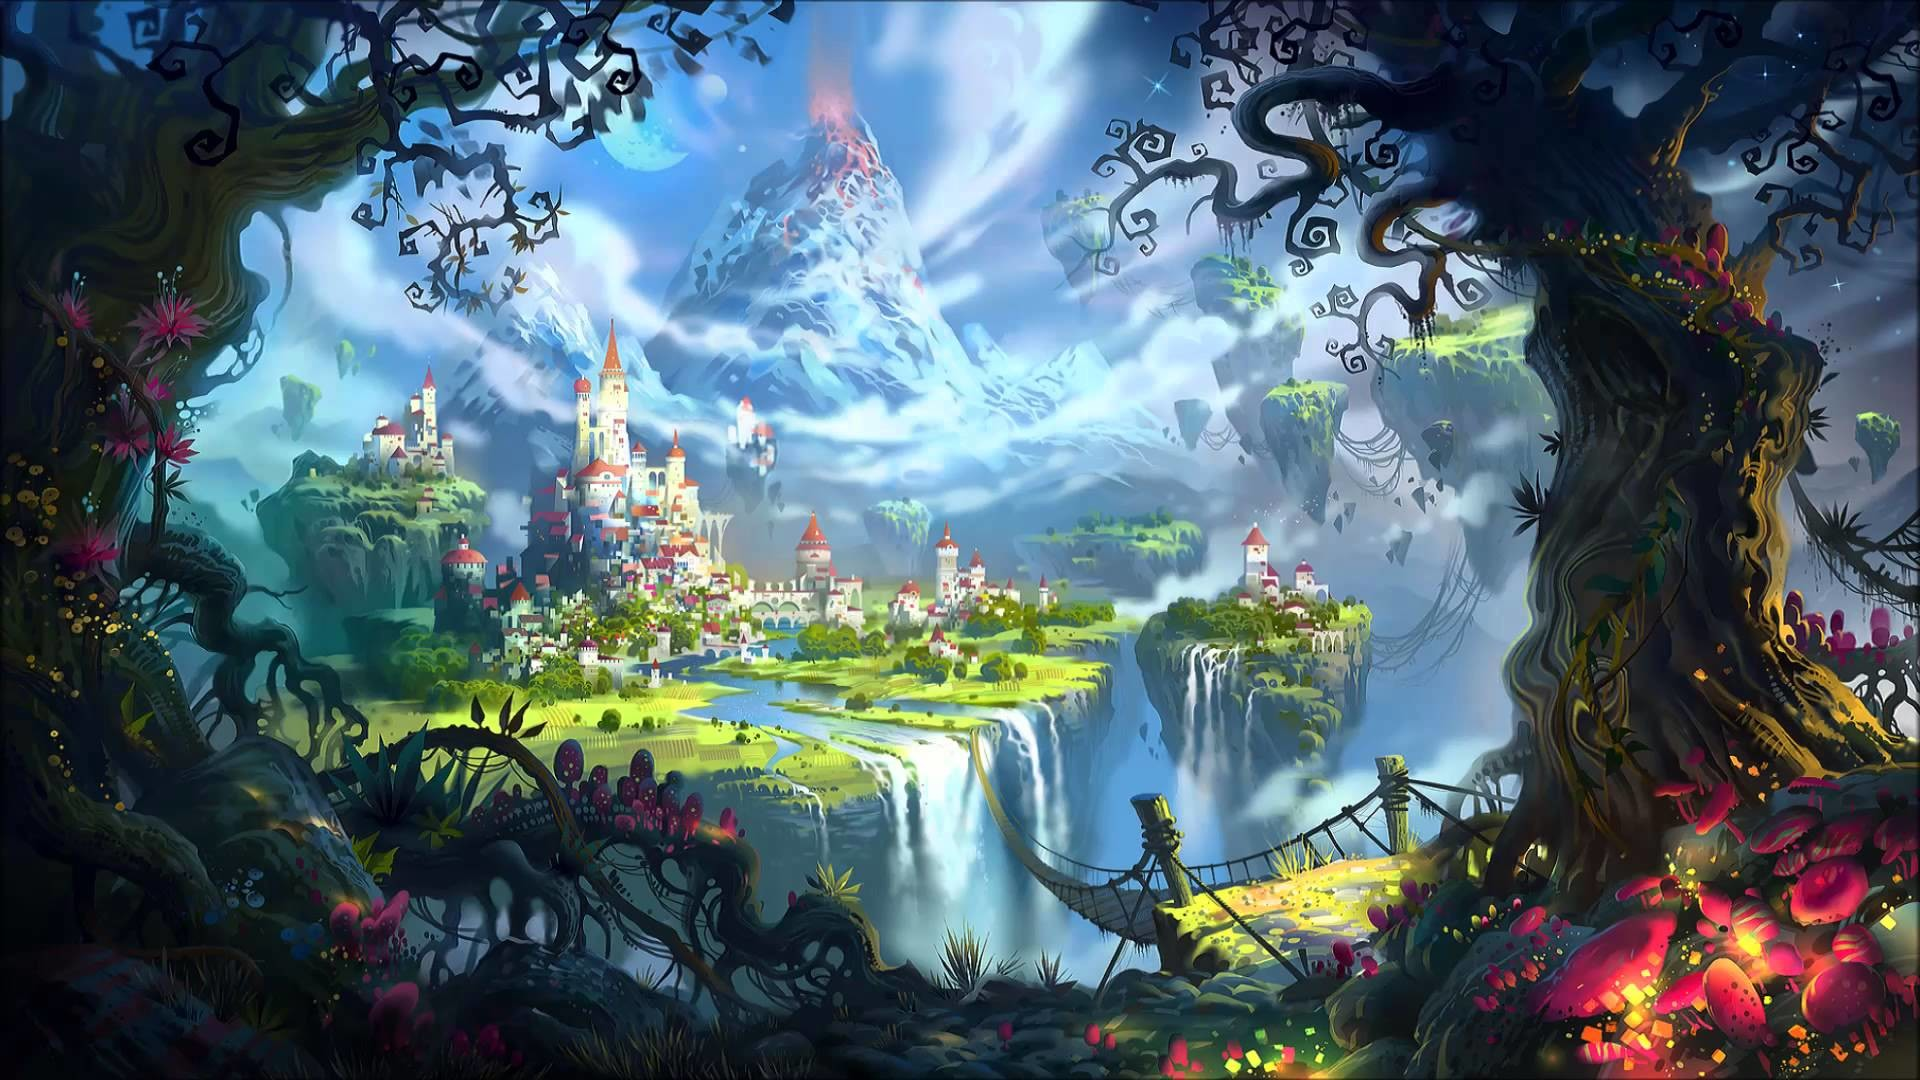 Fairytale Background (55+ Images